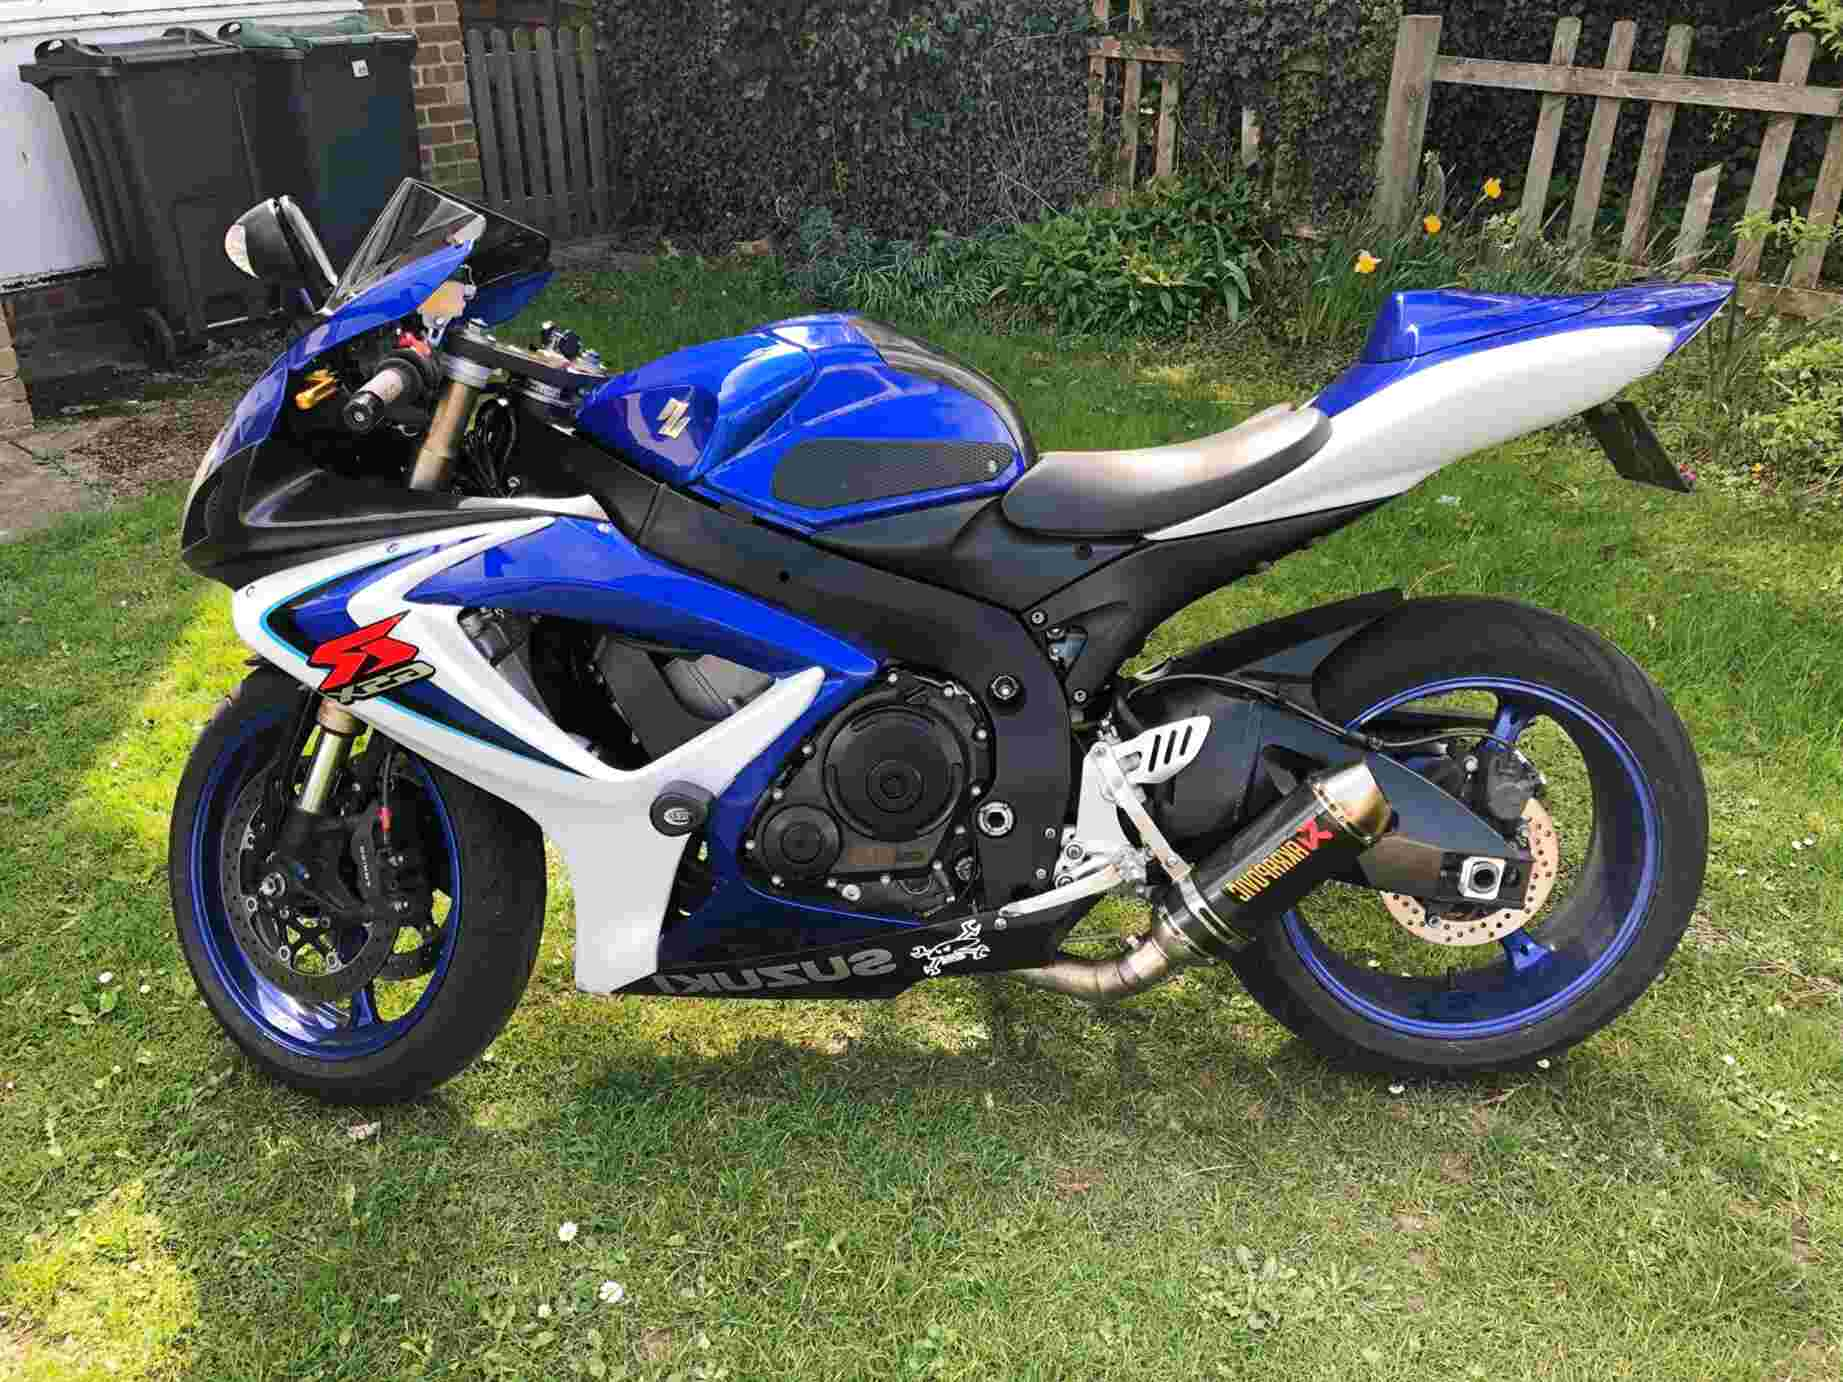 gsxr 600 k6 for sale